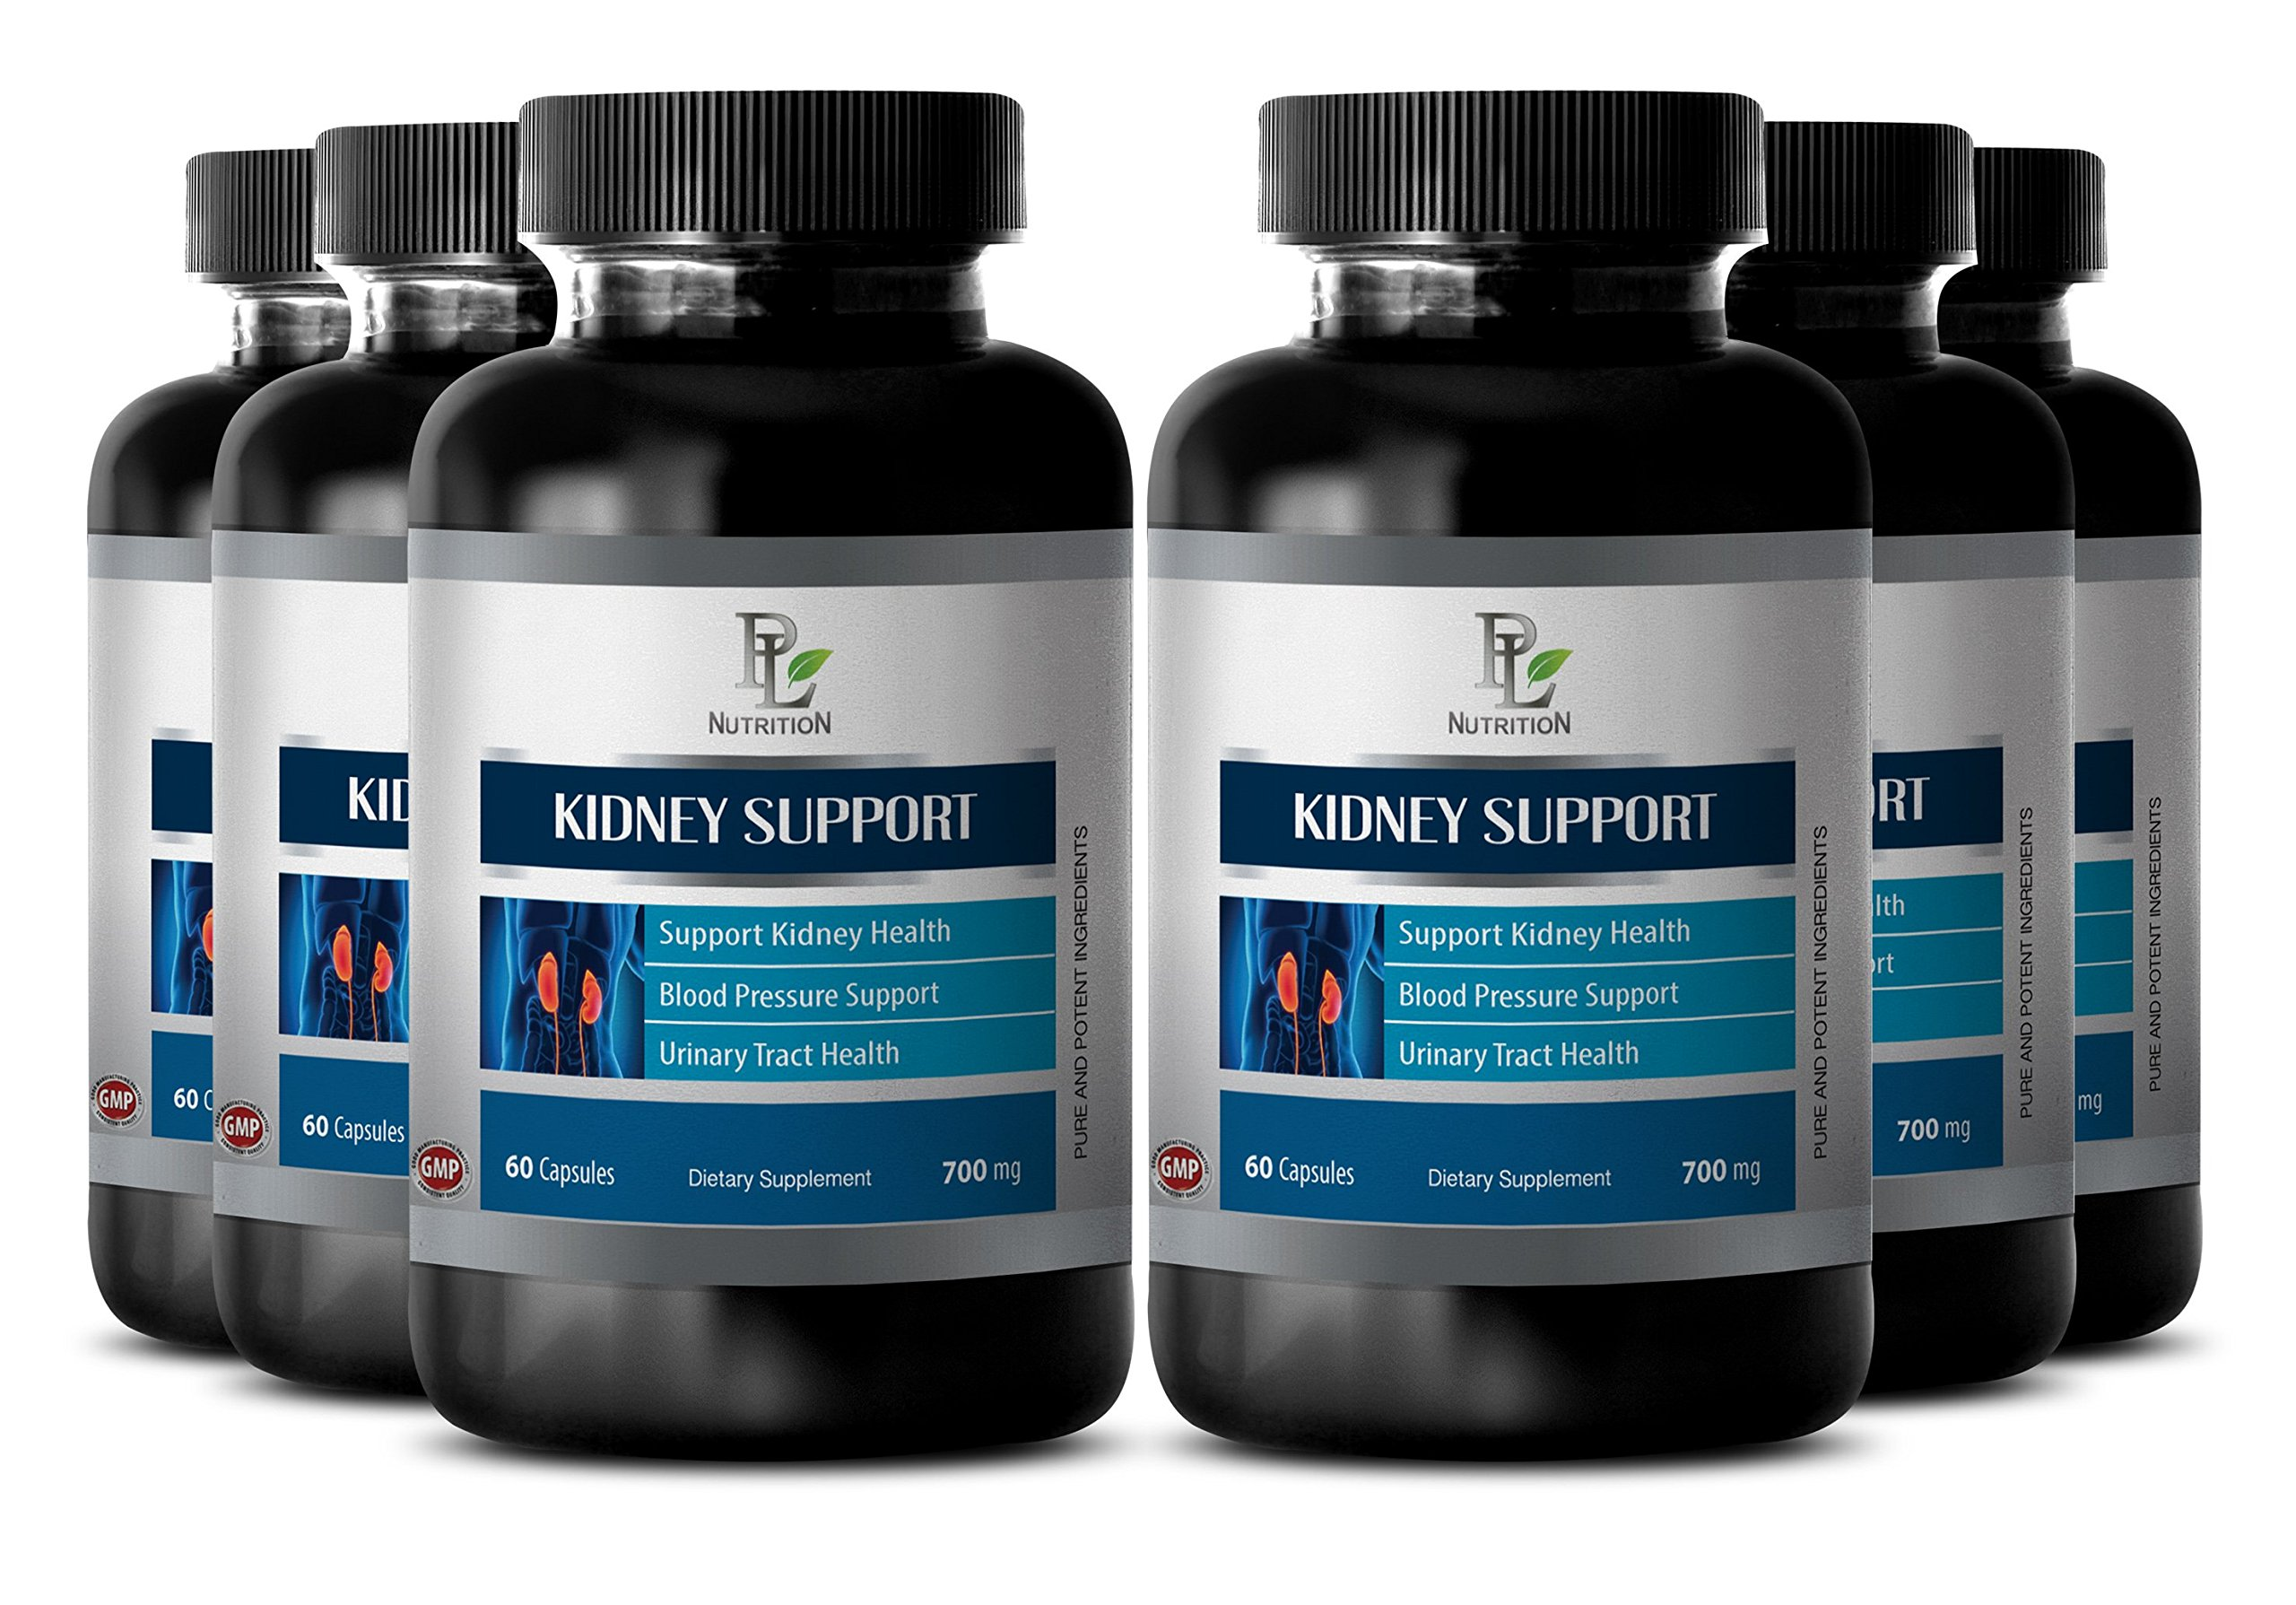 Bladder Ease - Kidney Support Complex - Bladder Supplement - 6 Bottles 360 Capsules